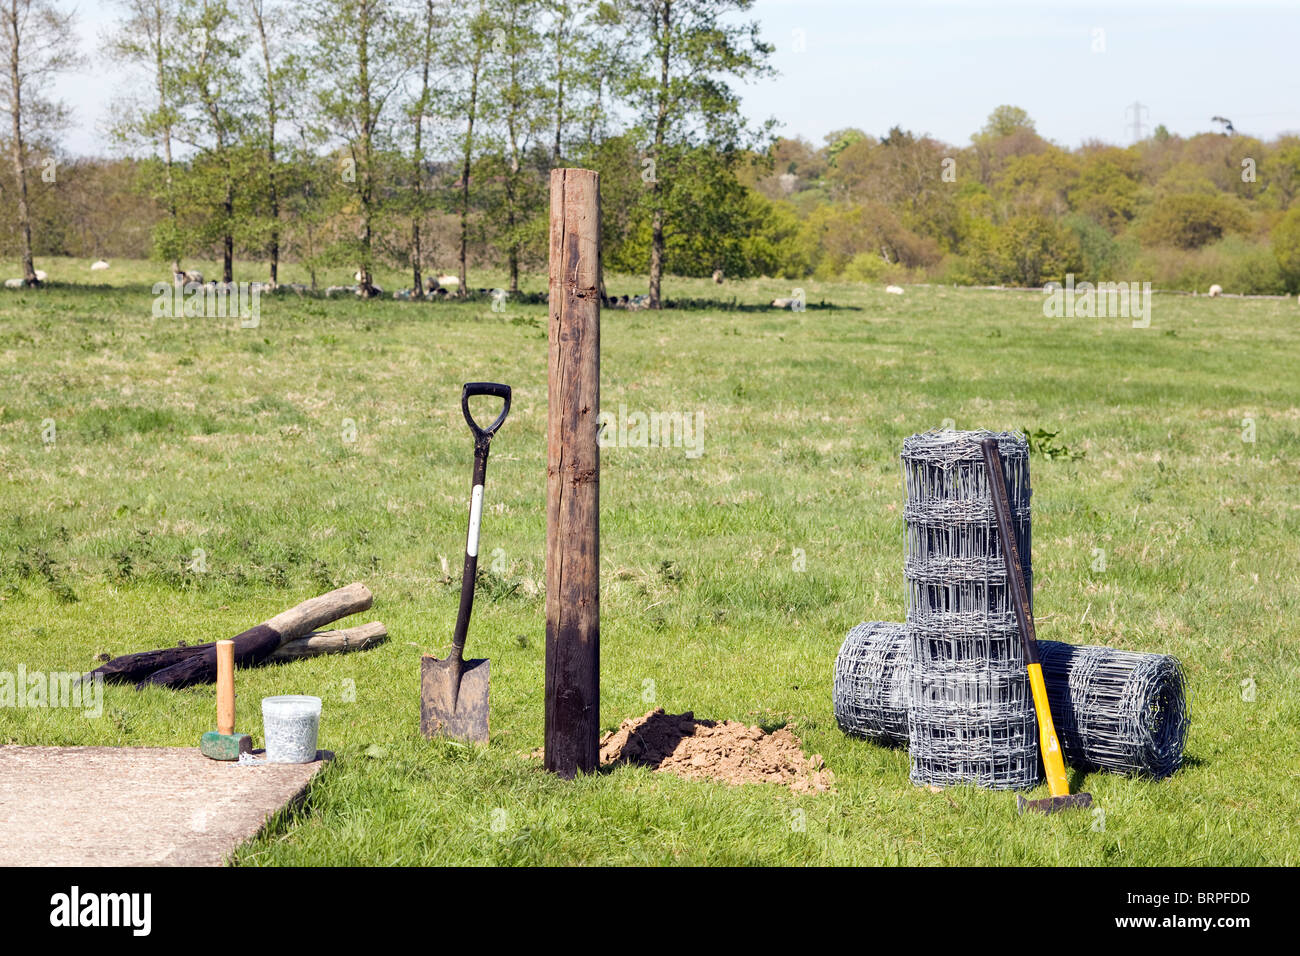 Sheep Fencing Stock Photos & Sheep Fencing Stock Images - Alamy